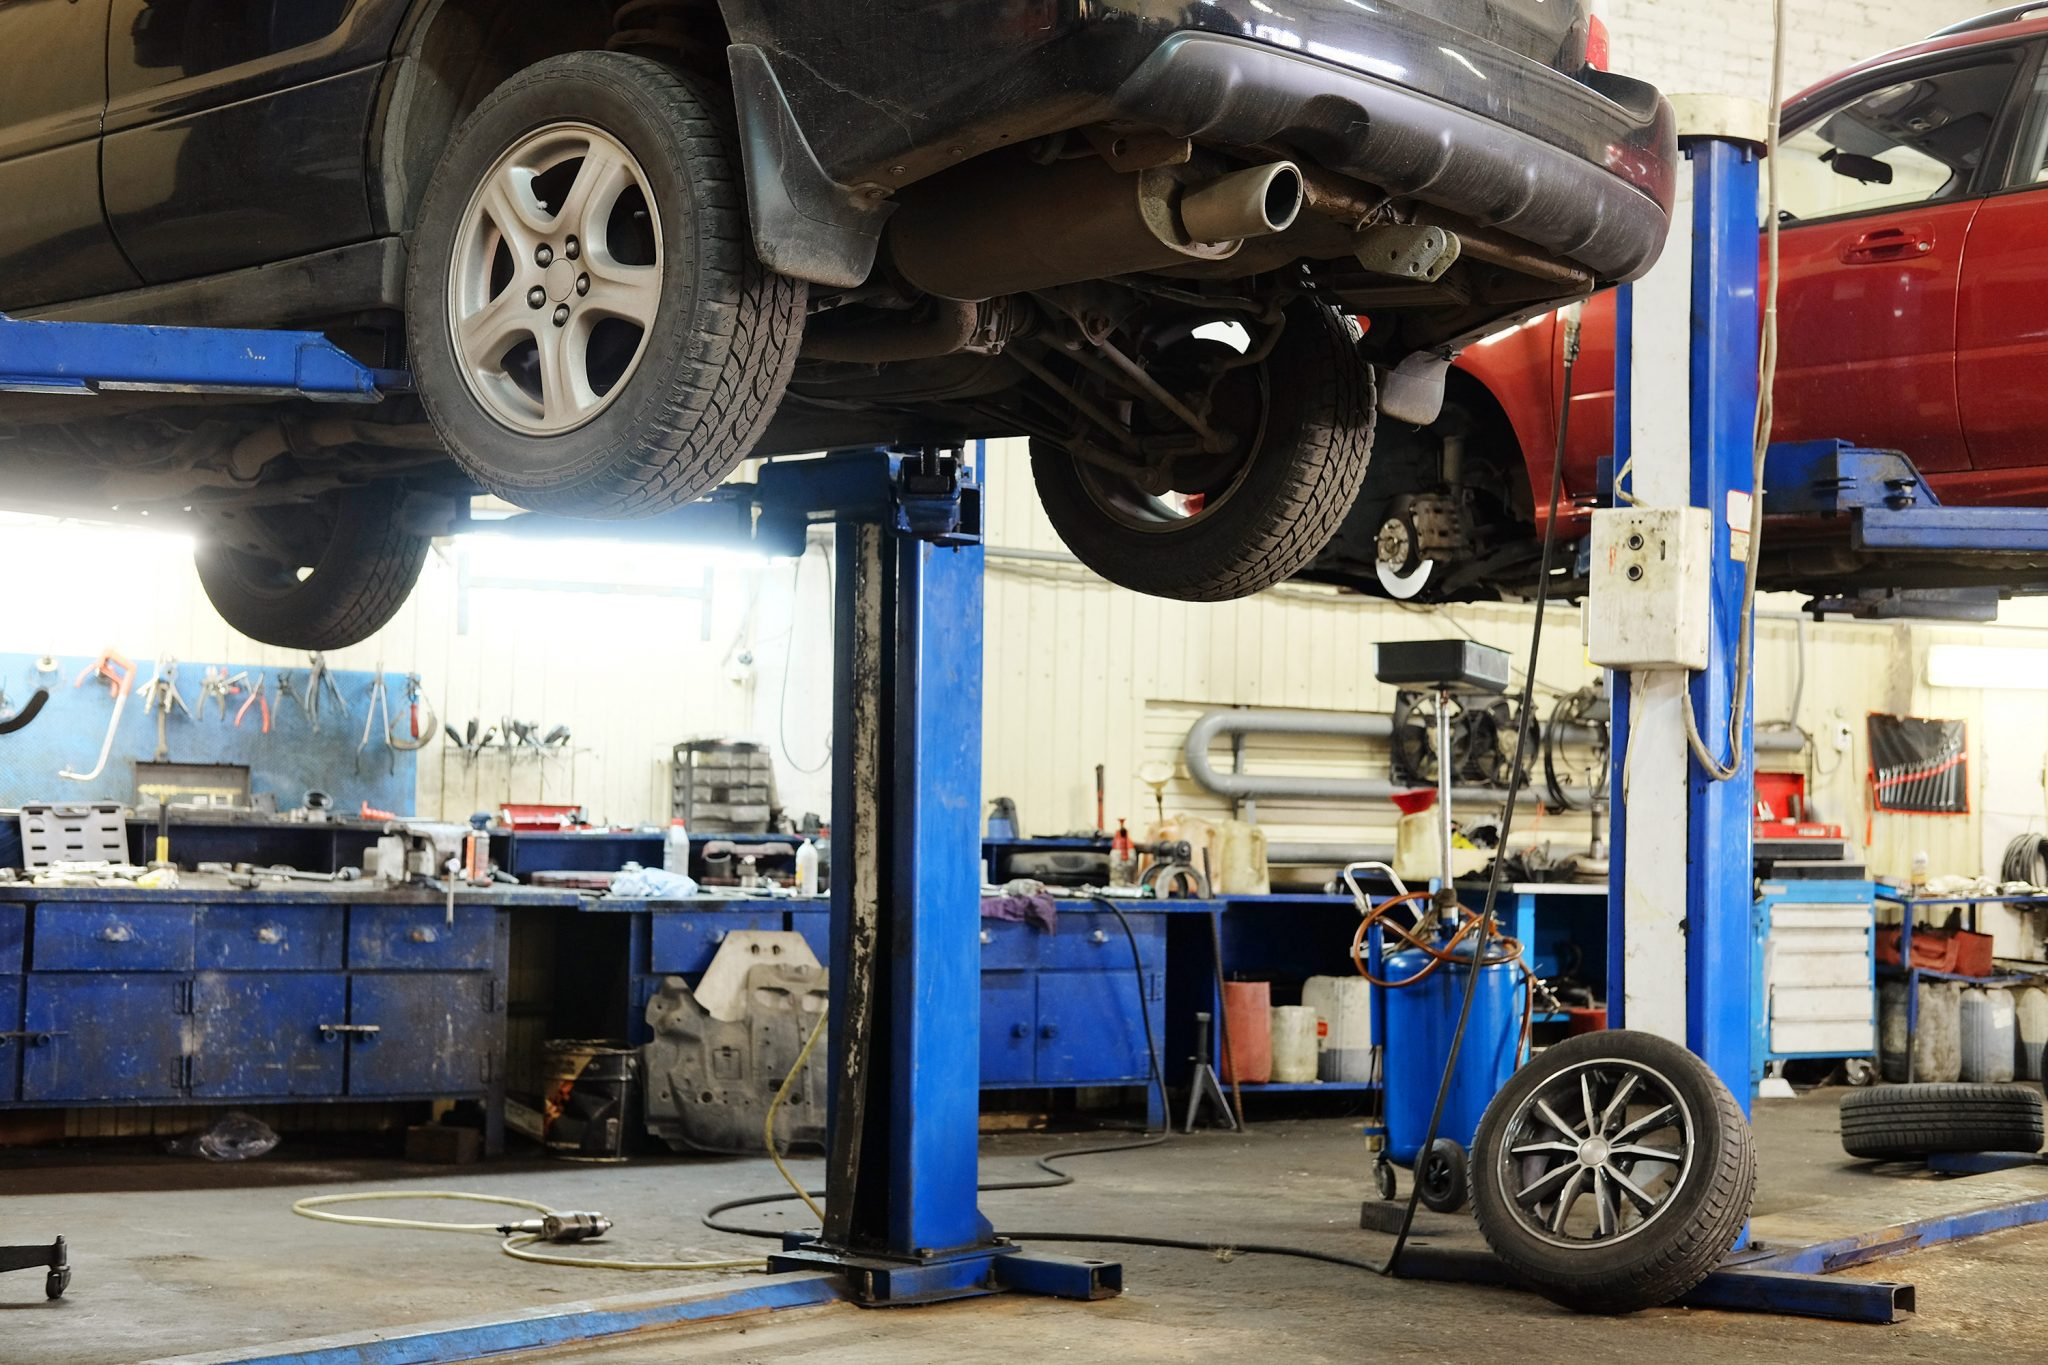 High Quality Garage Insurance Garagekeepers Liability Coverage. Interior Of An Auto Repair  Garage.